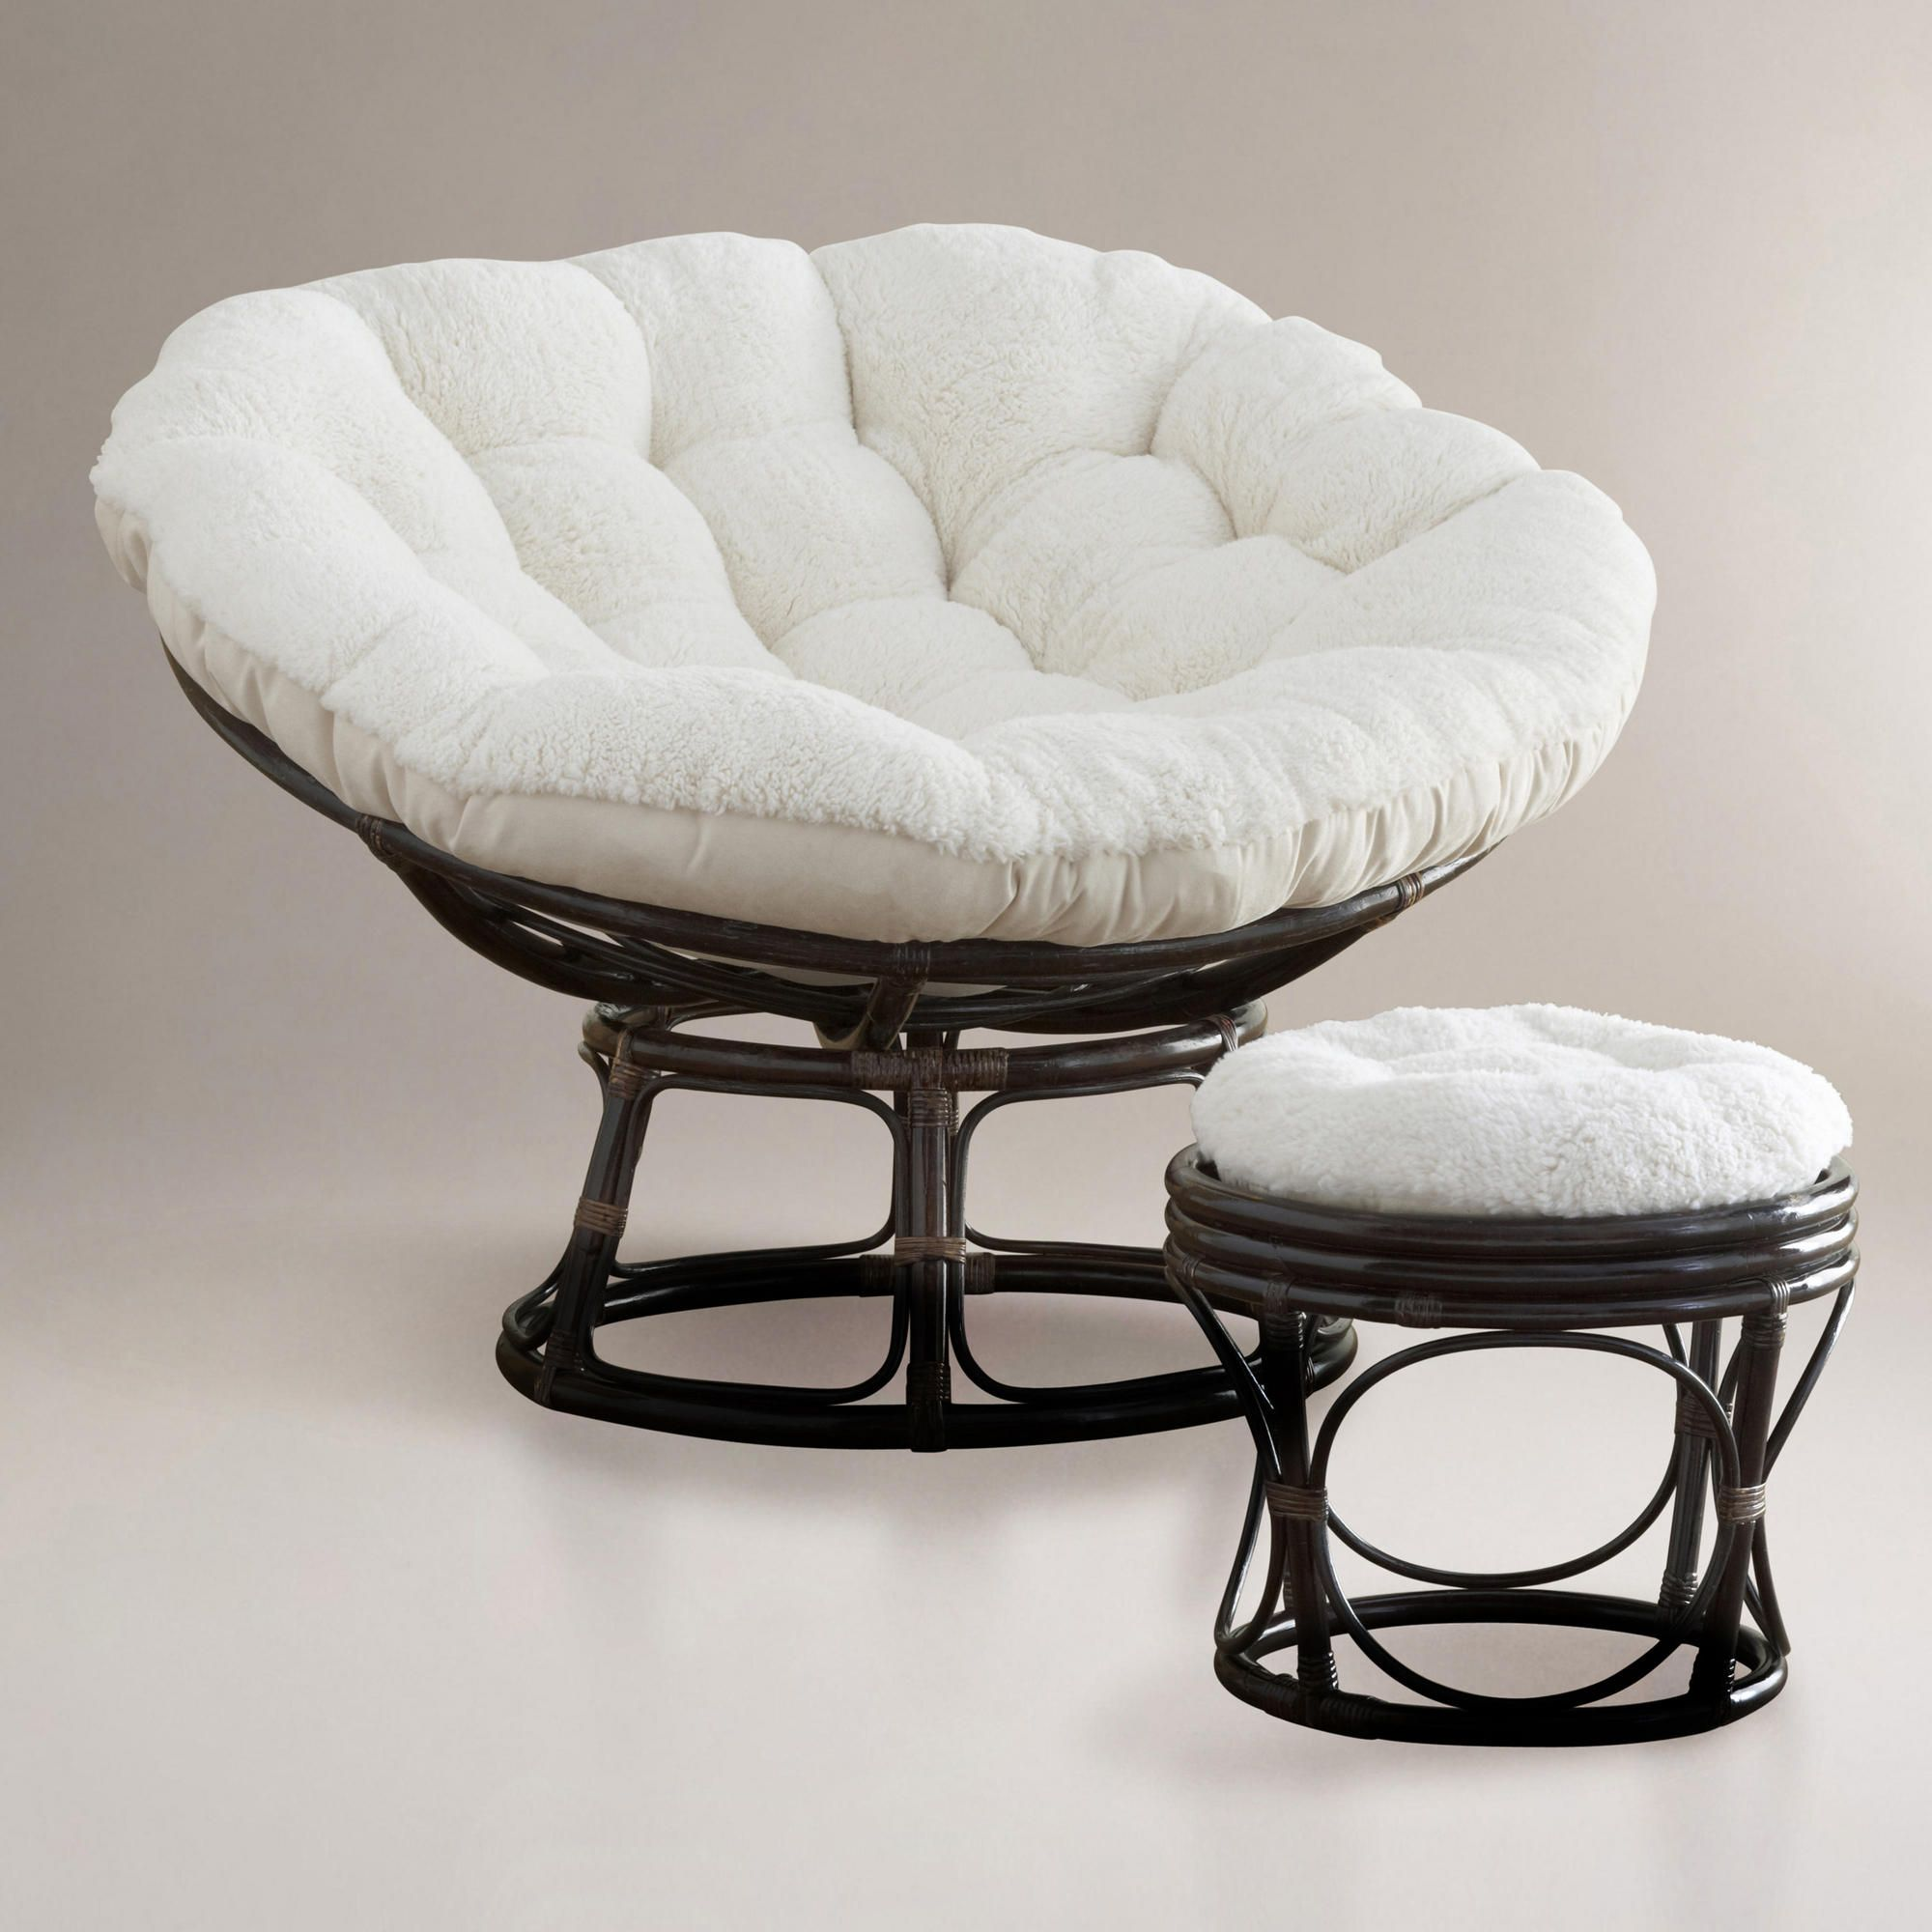 Superior One Of My Favorite Discoveries At WorldMarket: Ivory Faux Fur Papasan  Cushion And Chair Frame  Looks Reversible. Perfect Place To Curl Up And  Read Or Study!